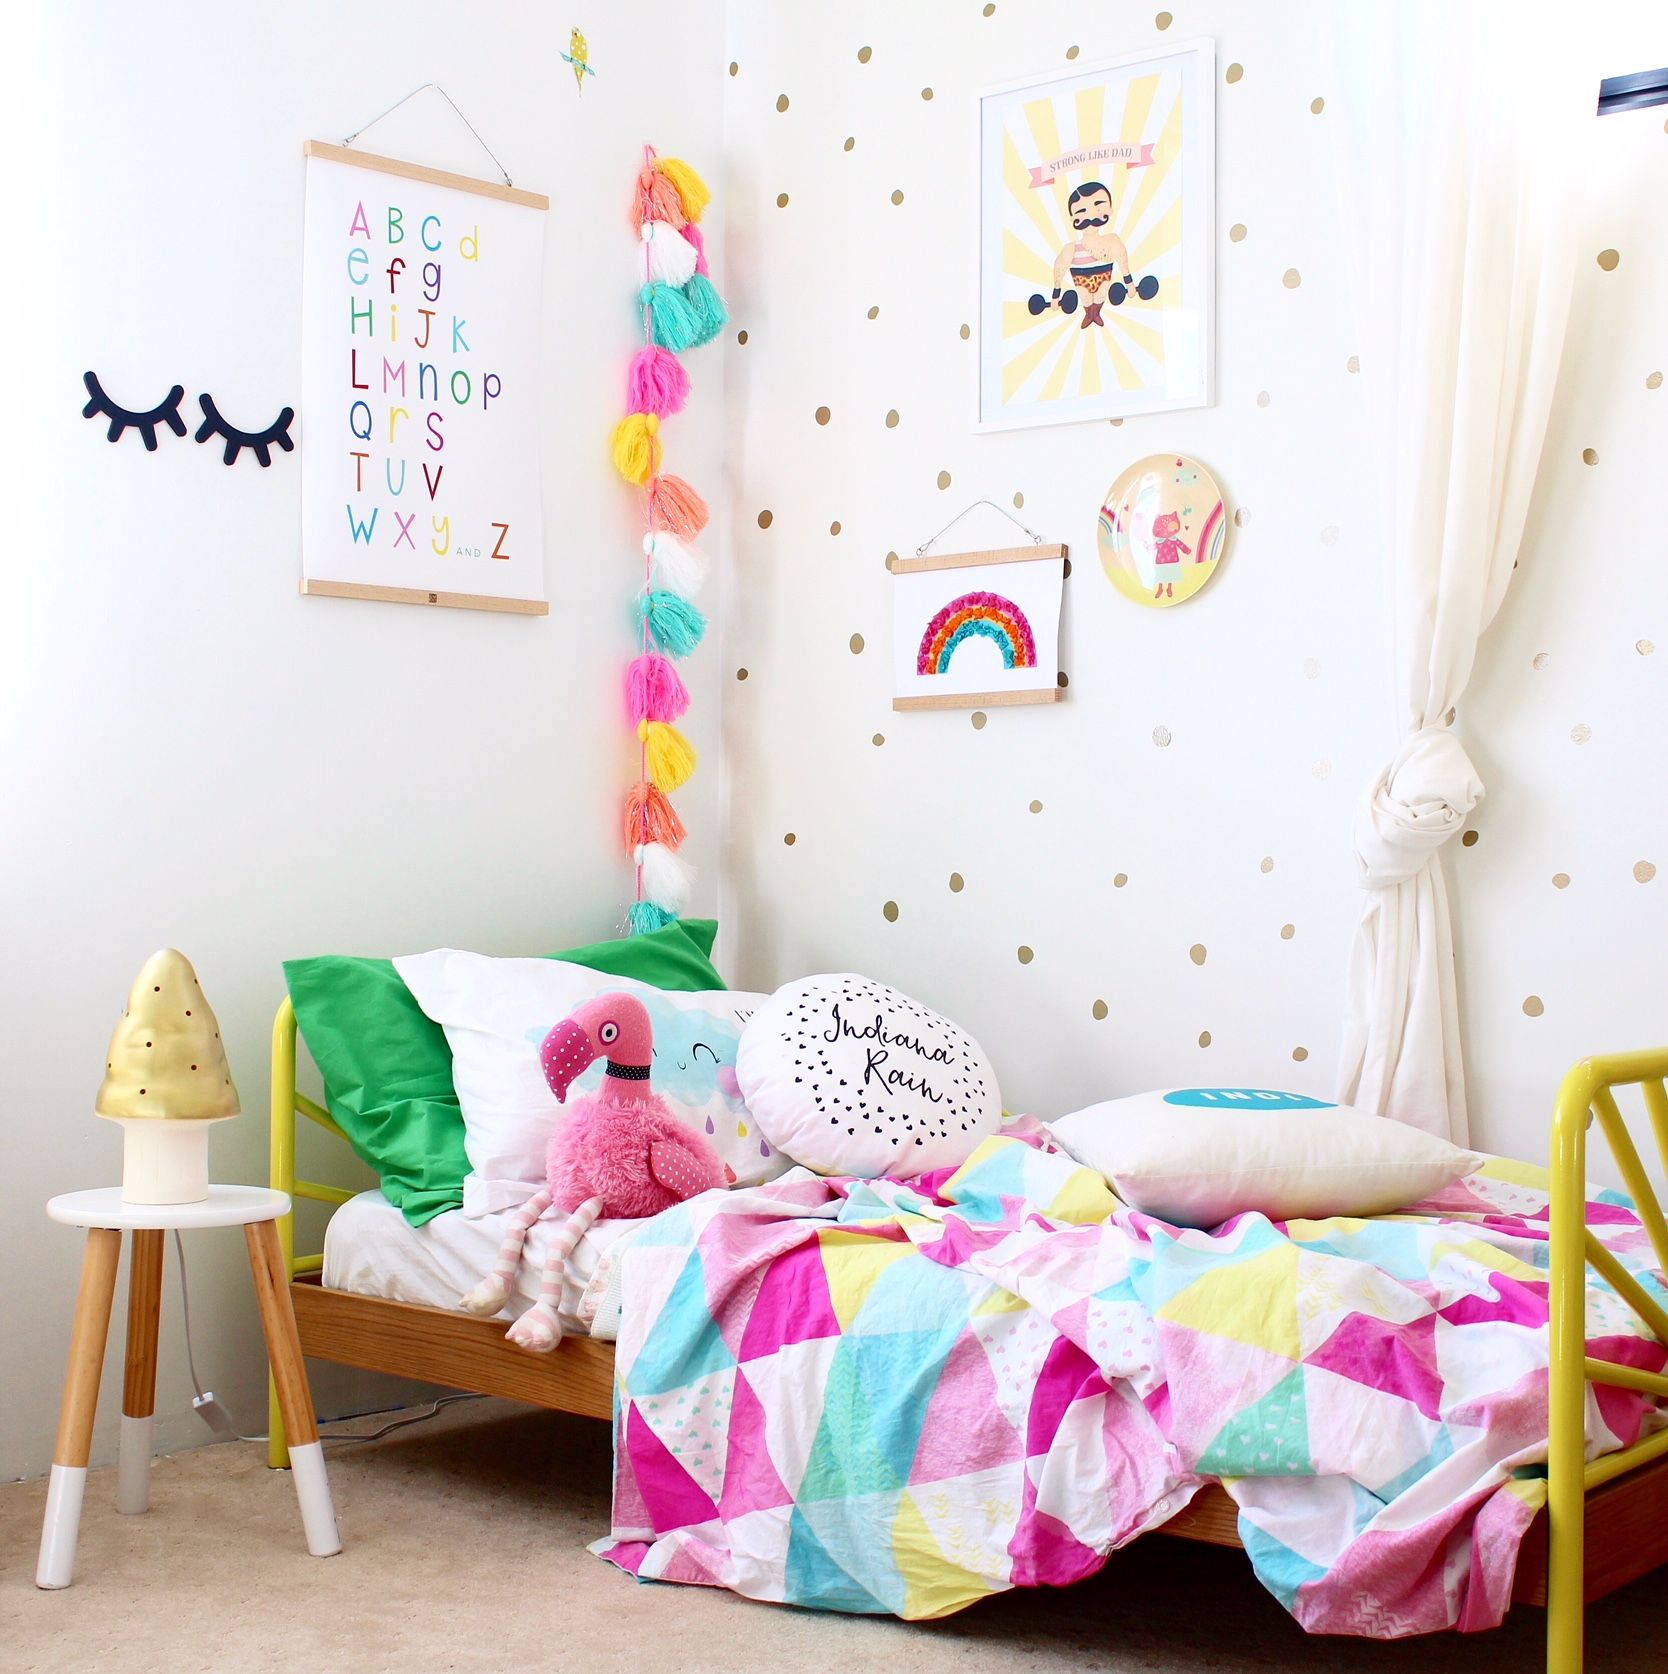 Boy Bedroom Paint Bedroom Canvas Wall Art Girls Bedroom Decor Ideas Modern Kids Bedroom Ceiling Designs: Rainbow Alphabet Chart